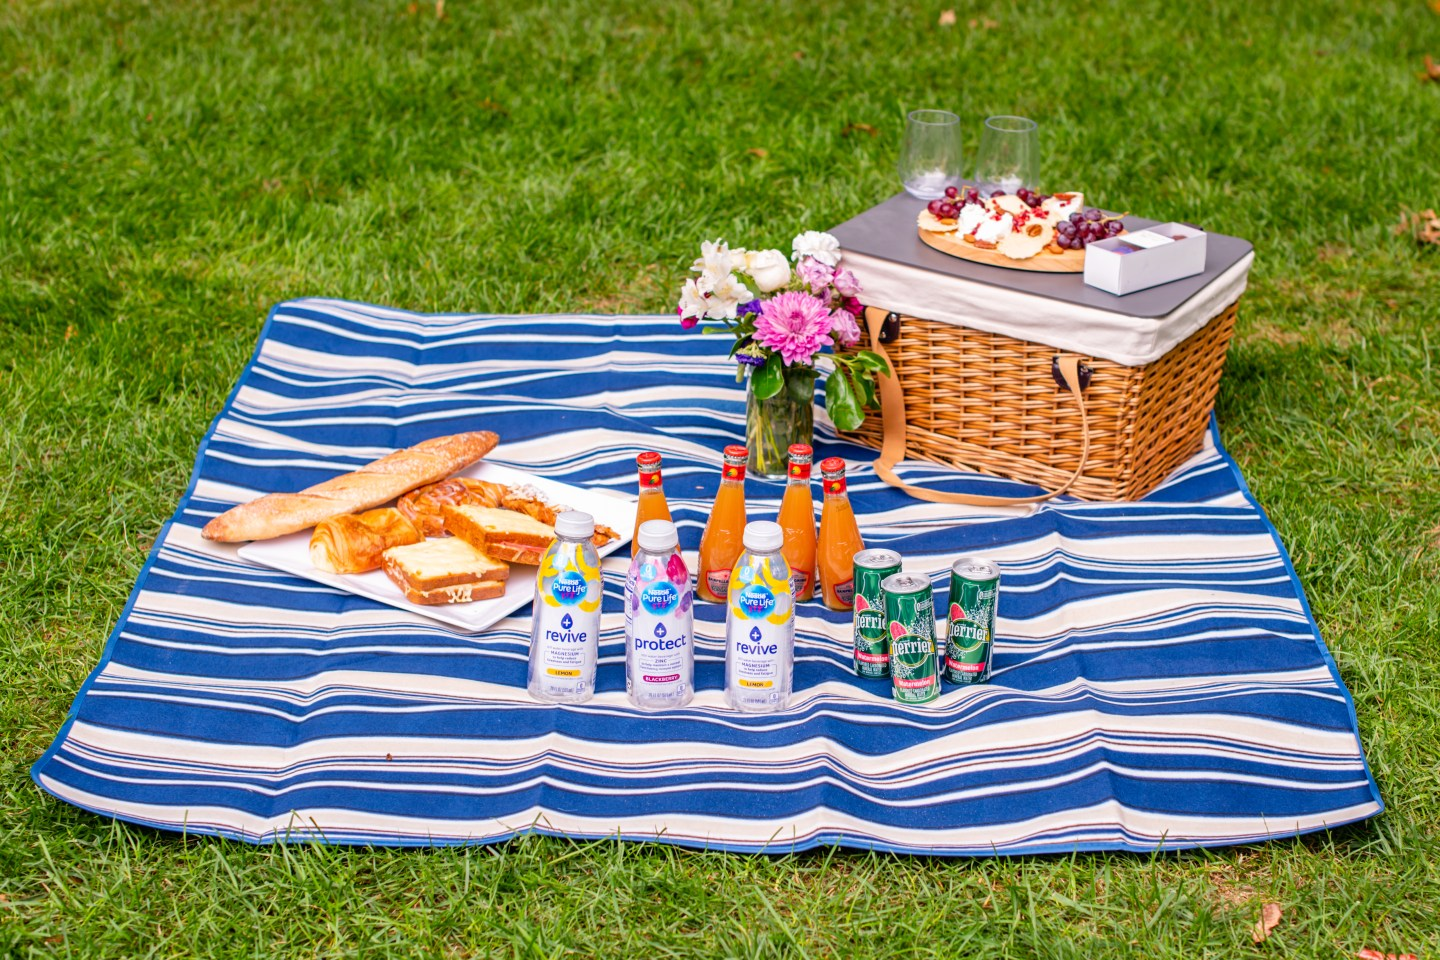 How to Host a Beautiful Picnic